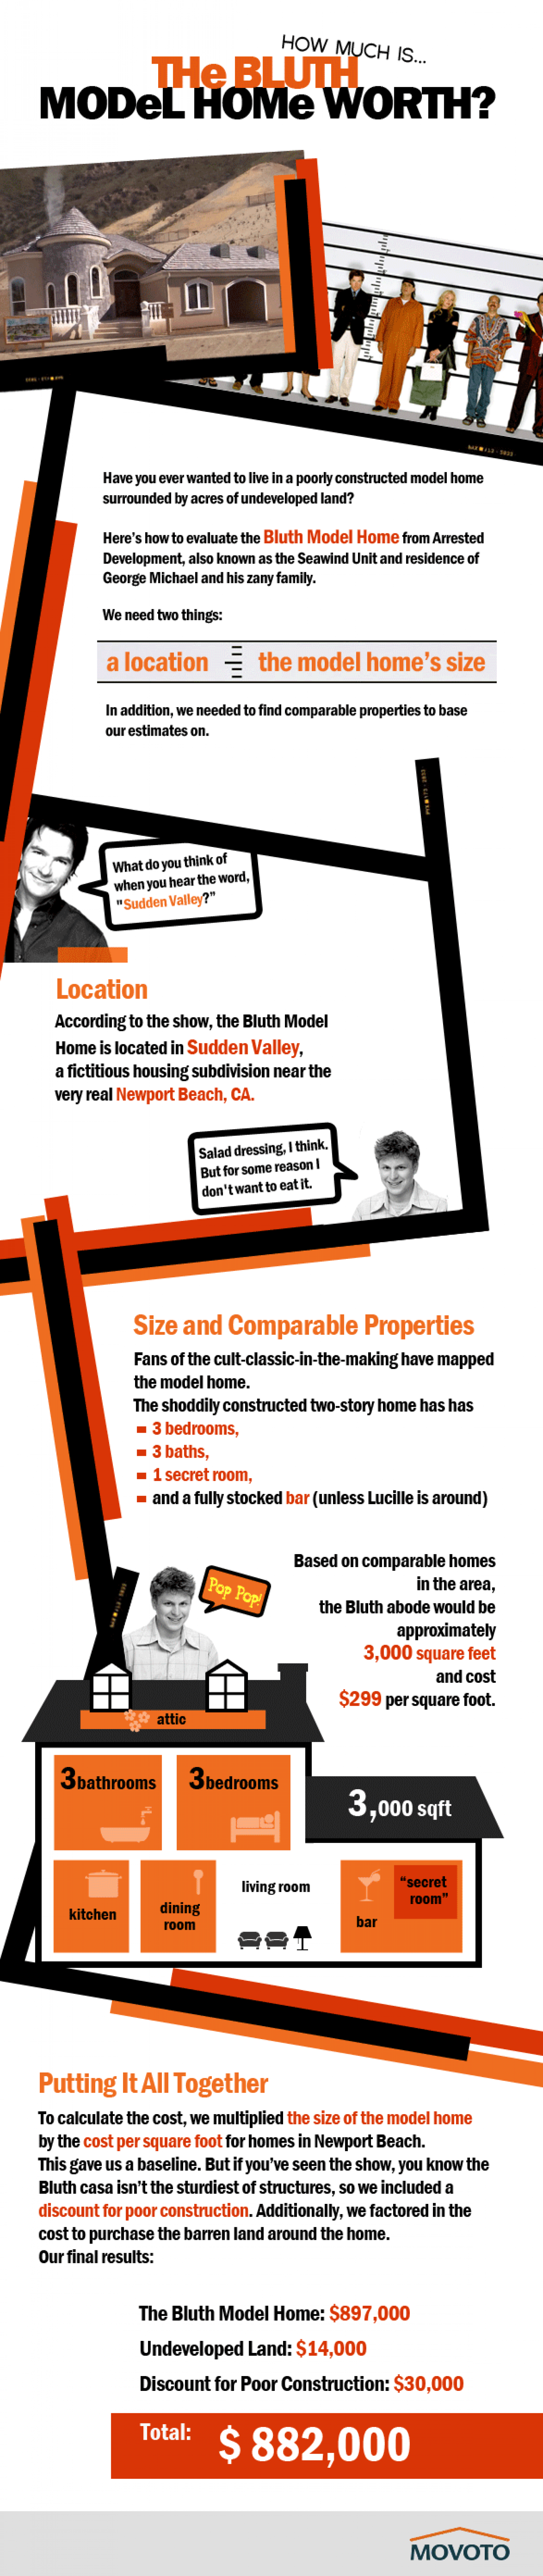 How Much is the Model Home from Arrested Development Worth in the Real World? Infographic